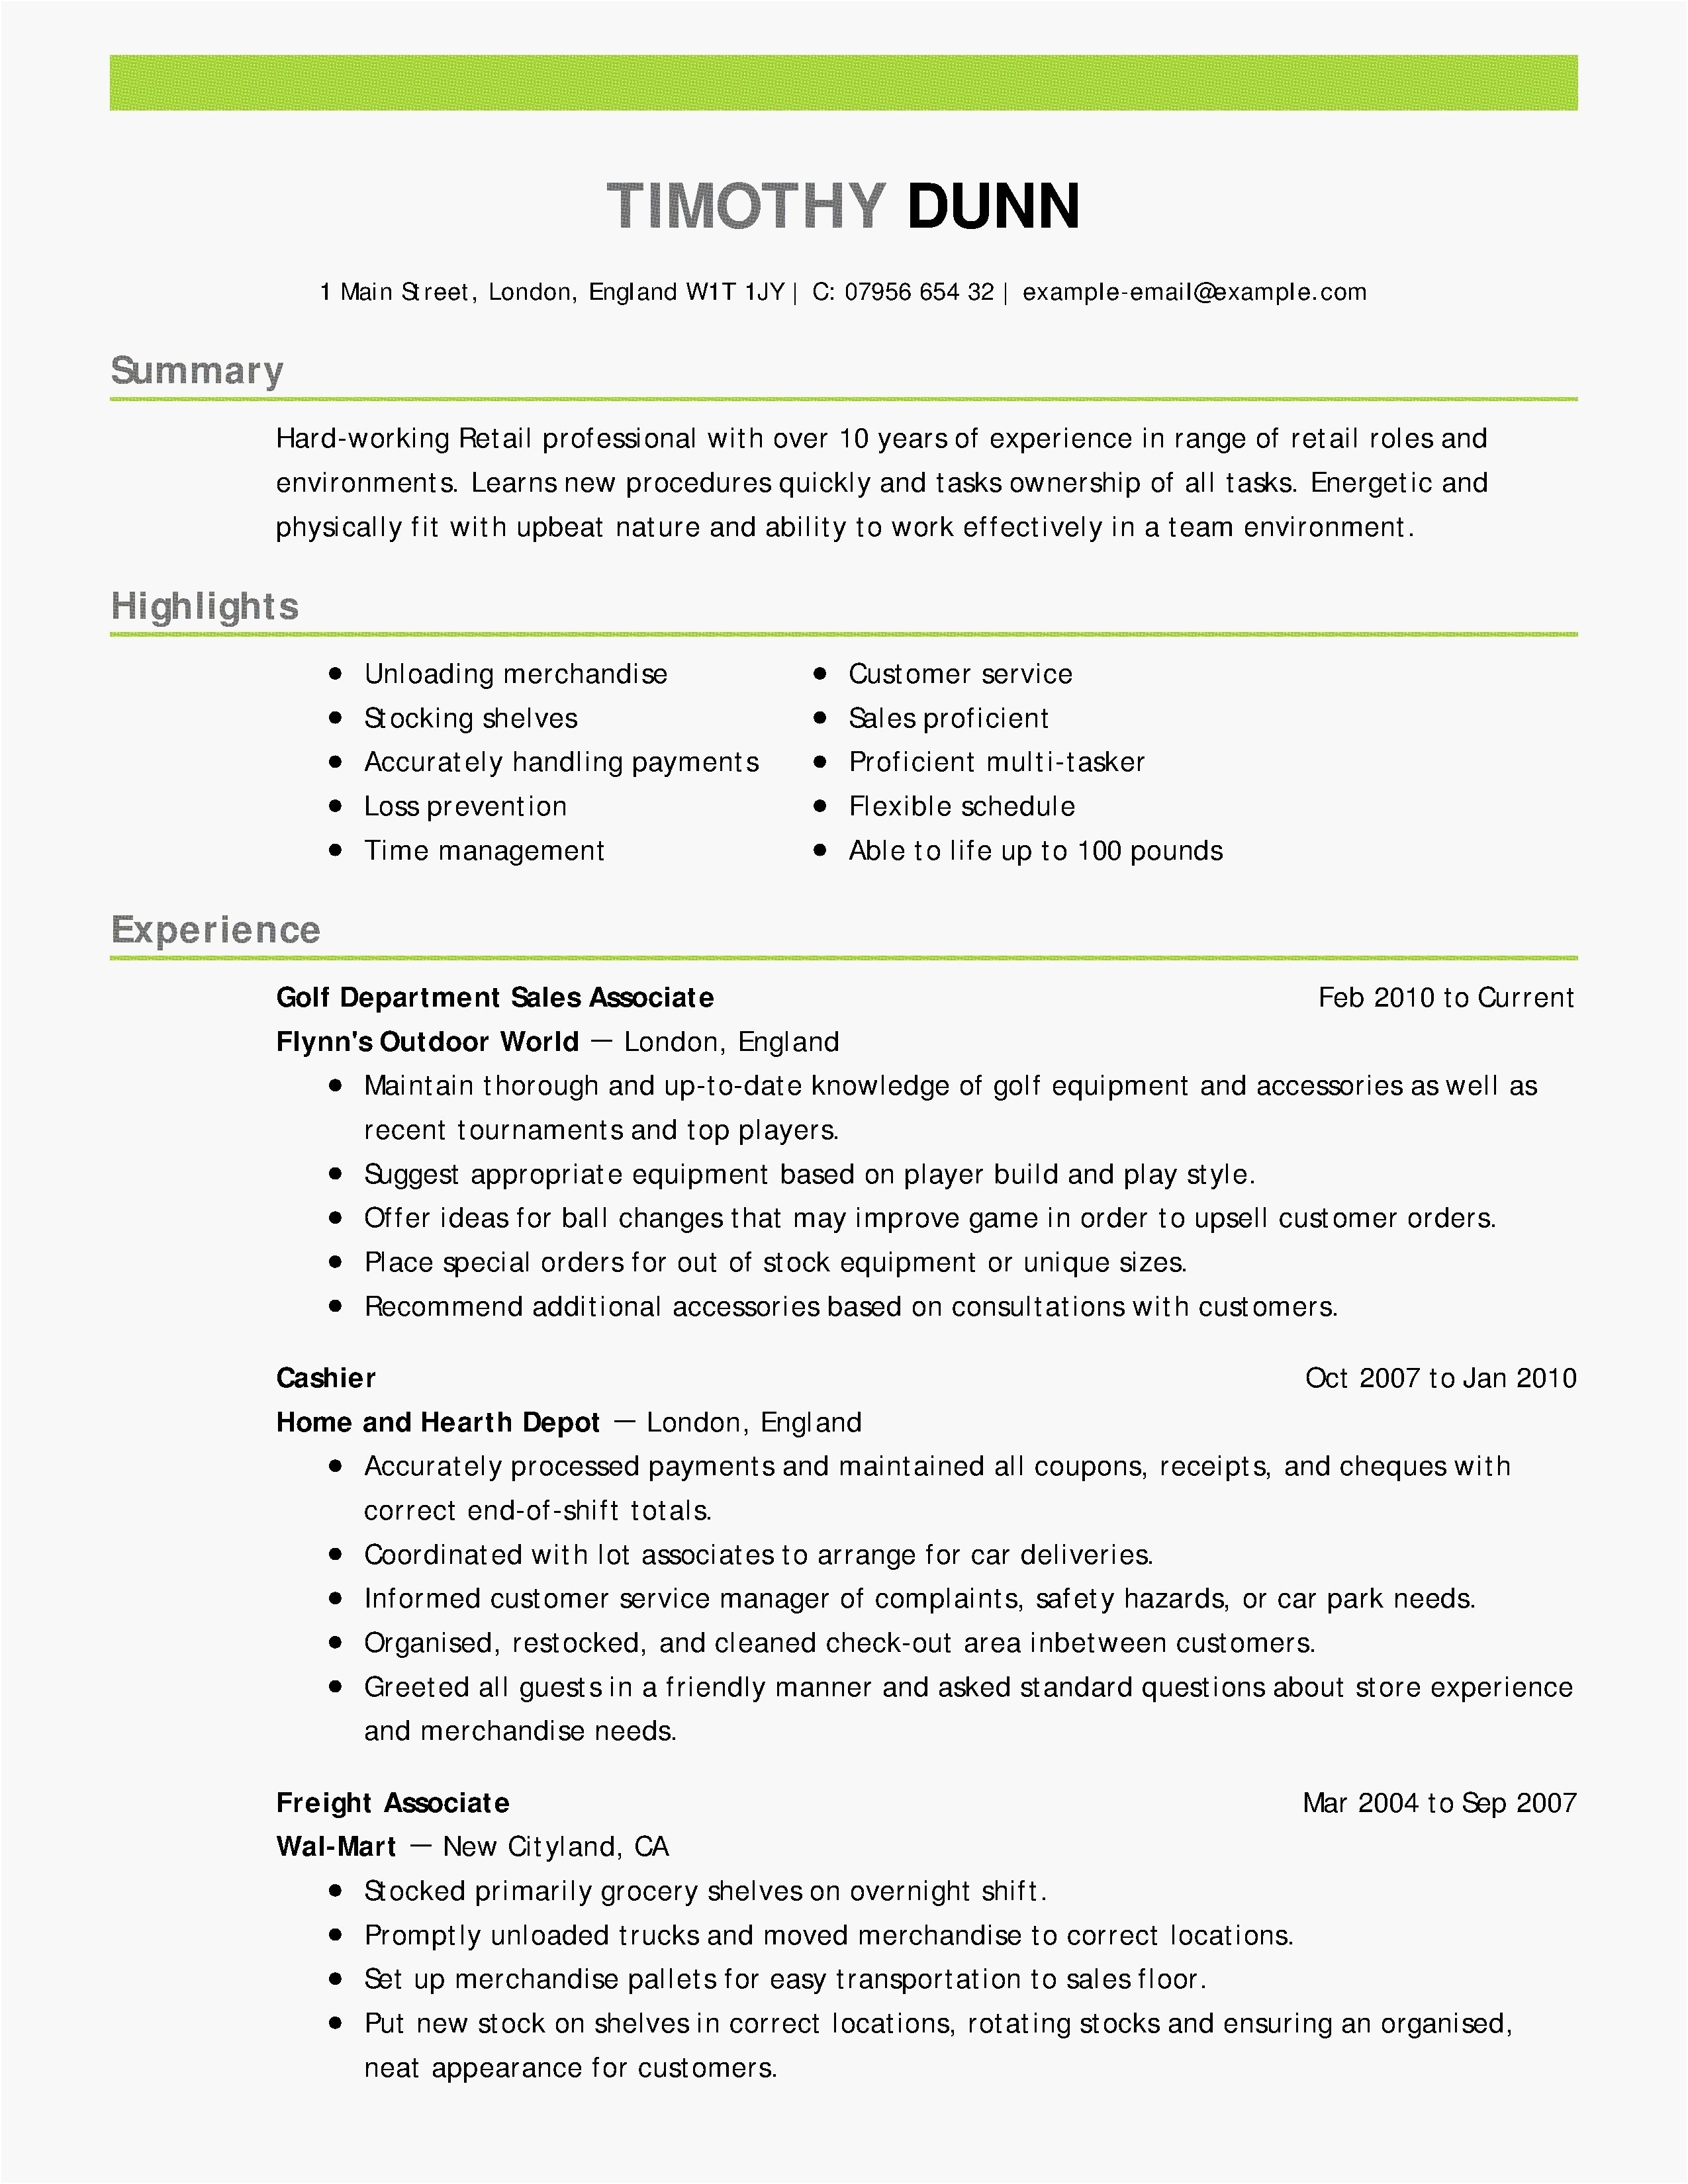 Corrections Officer Job Description Resume - Correctional Ficer Resume 17 Lovely Correctional Ficer Job